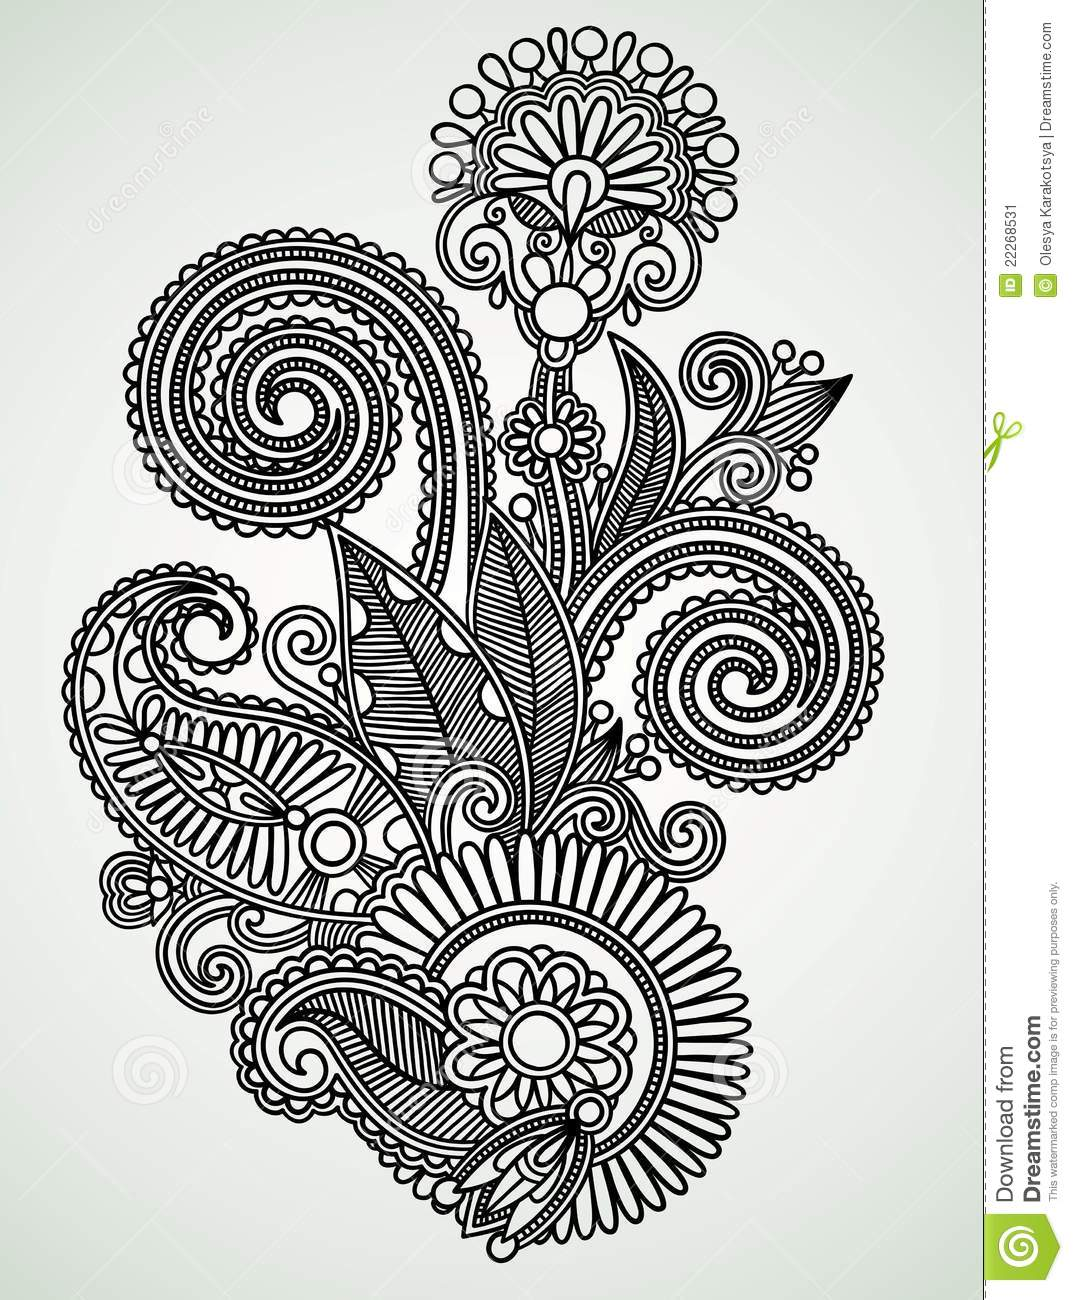 Line Art Design Flower : Ornate flower design stock image